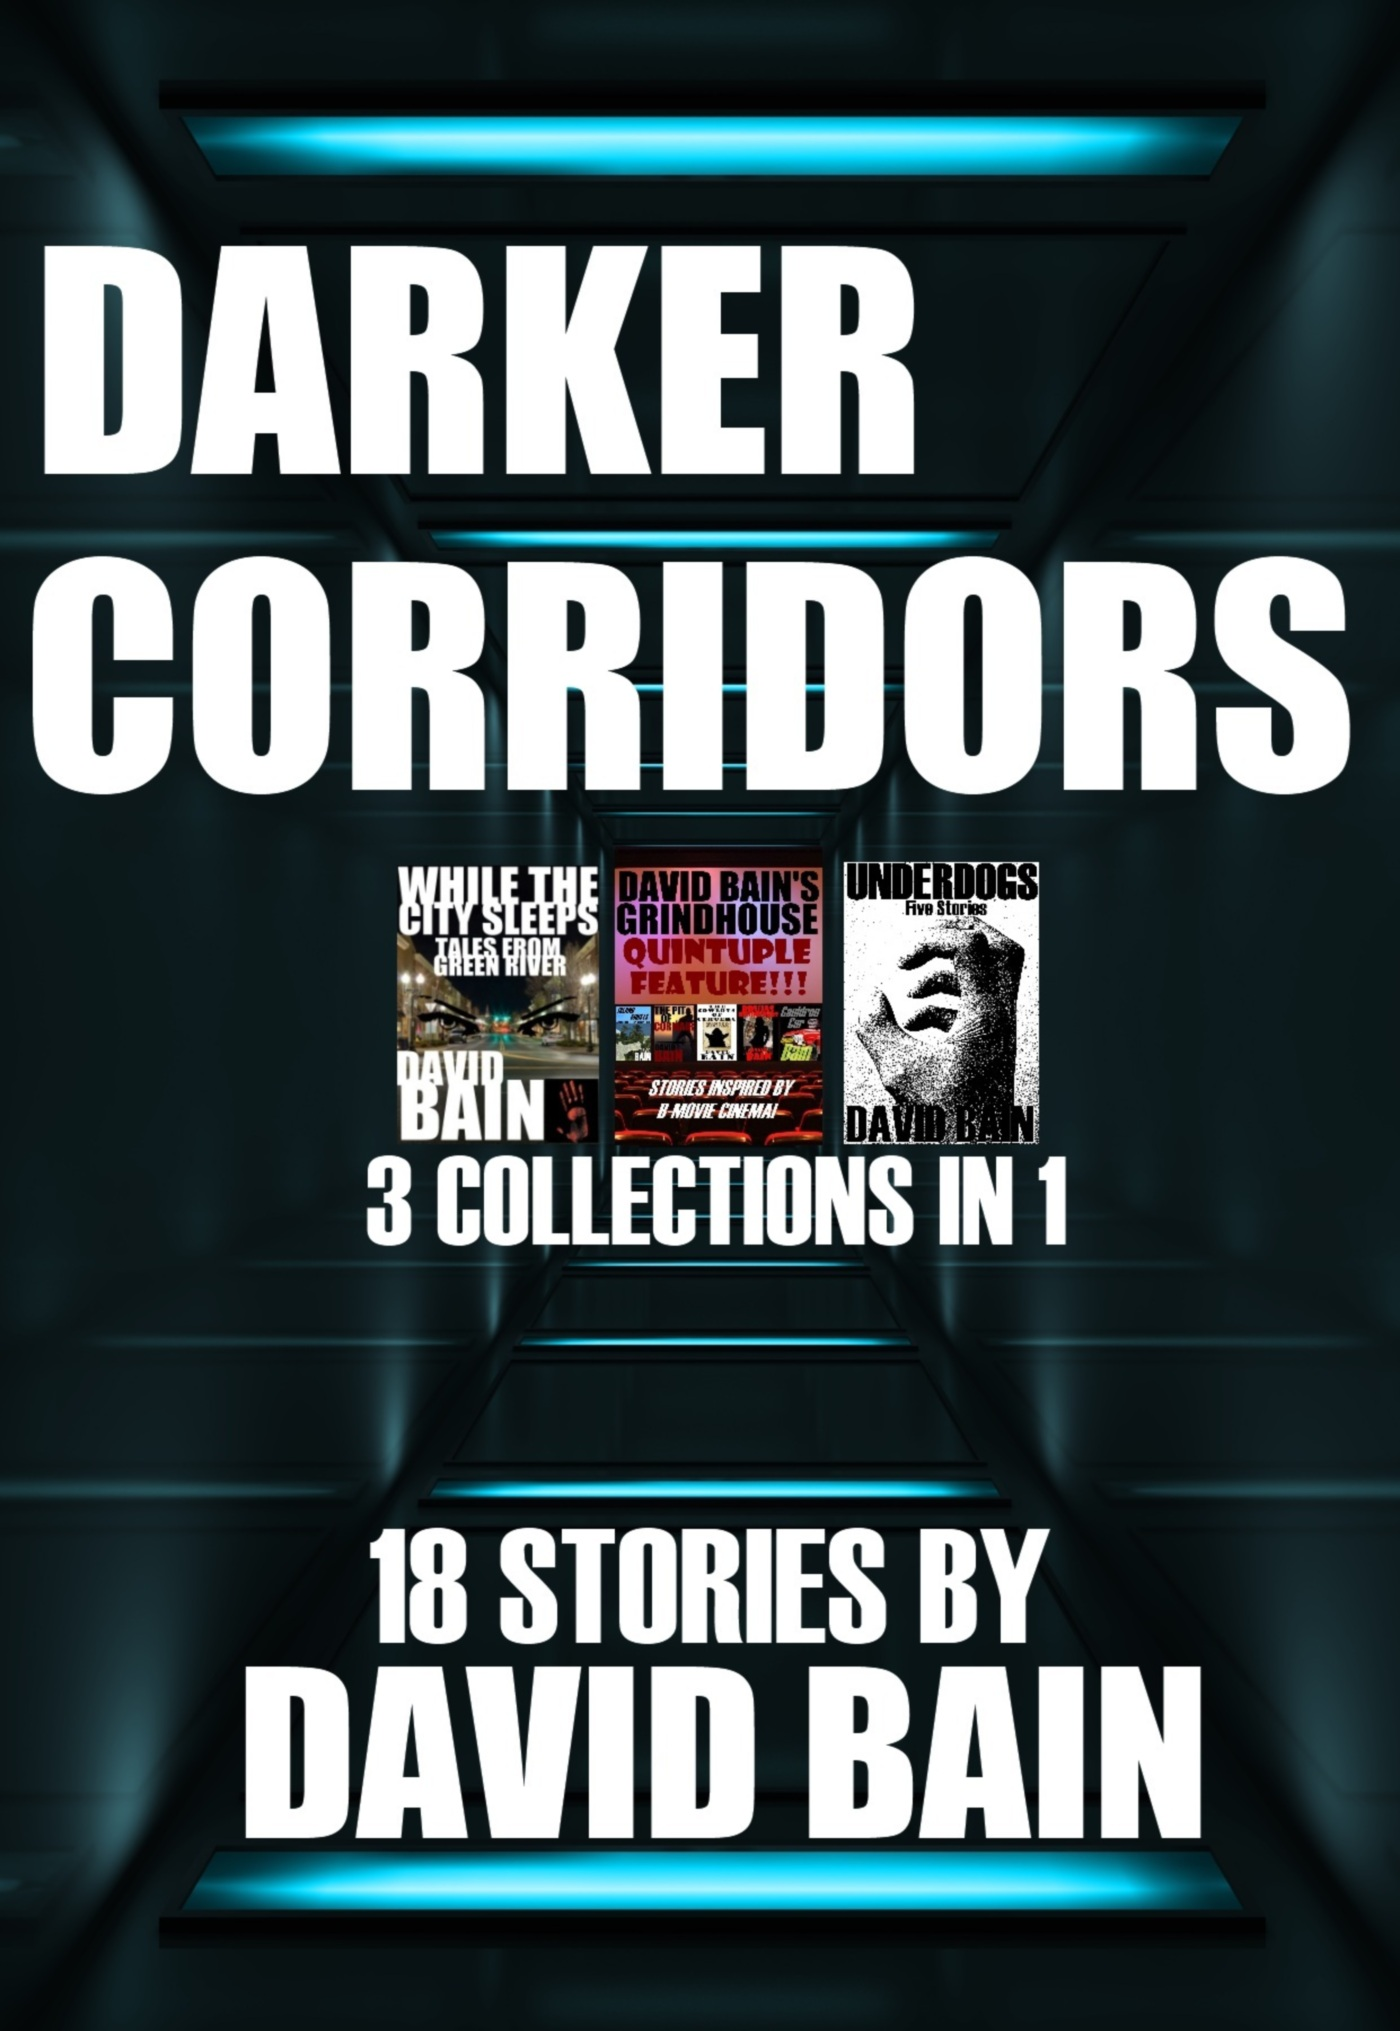 Darker Corridors: 3 Collections in 1